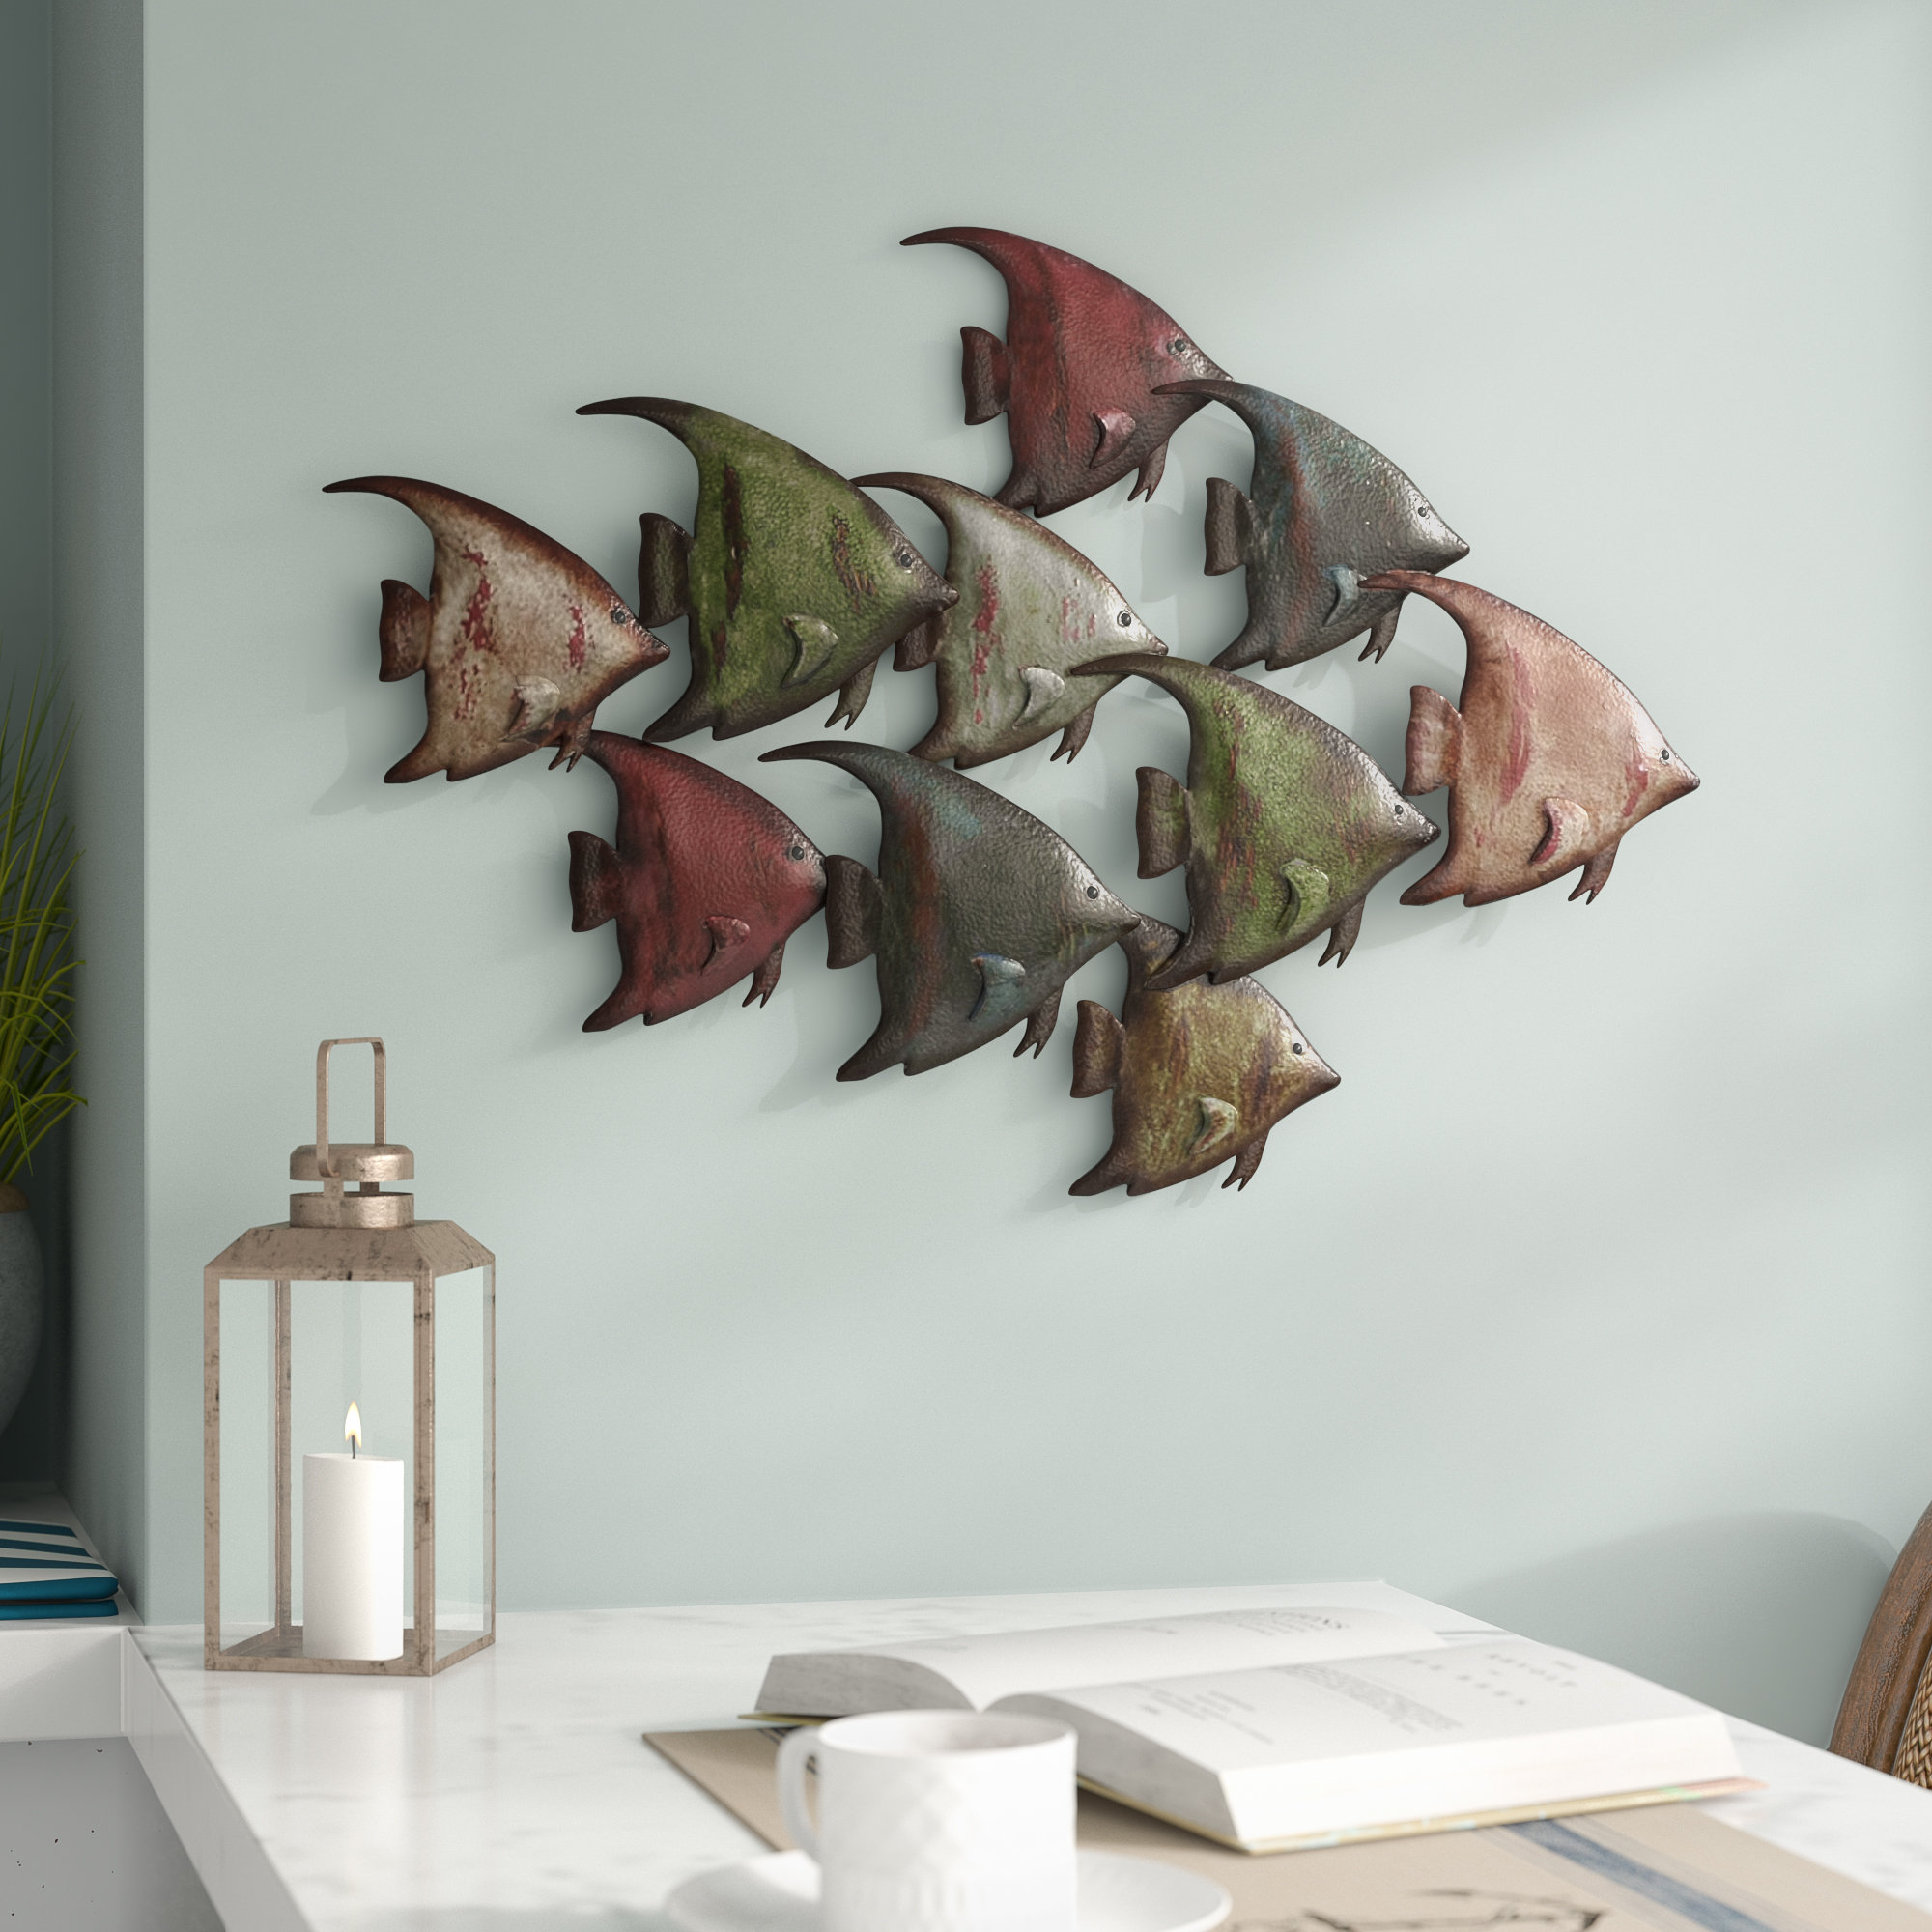 Beachcrest Home Coastal Metal Fish Wall Décor & Reviews (Gallery 1 of 20)